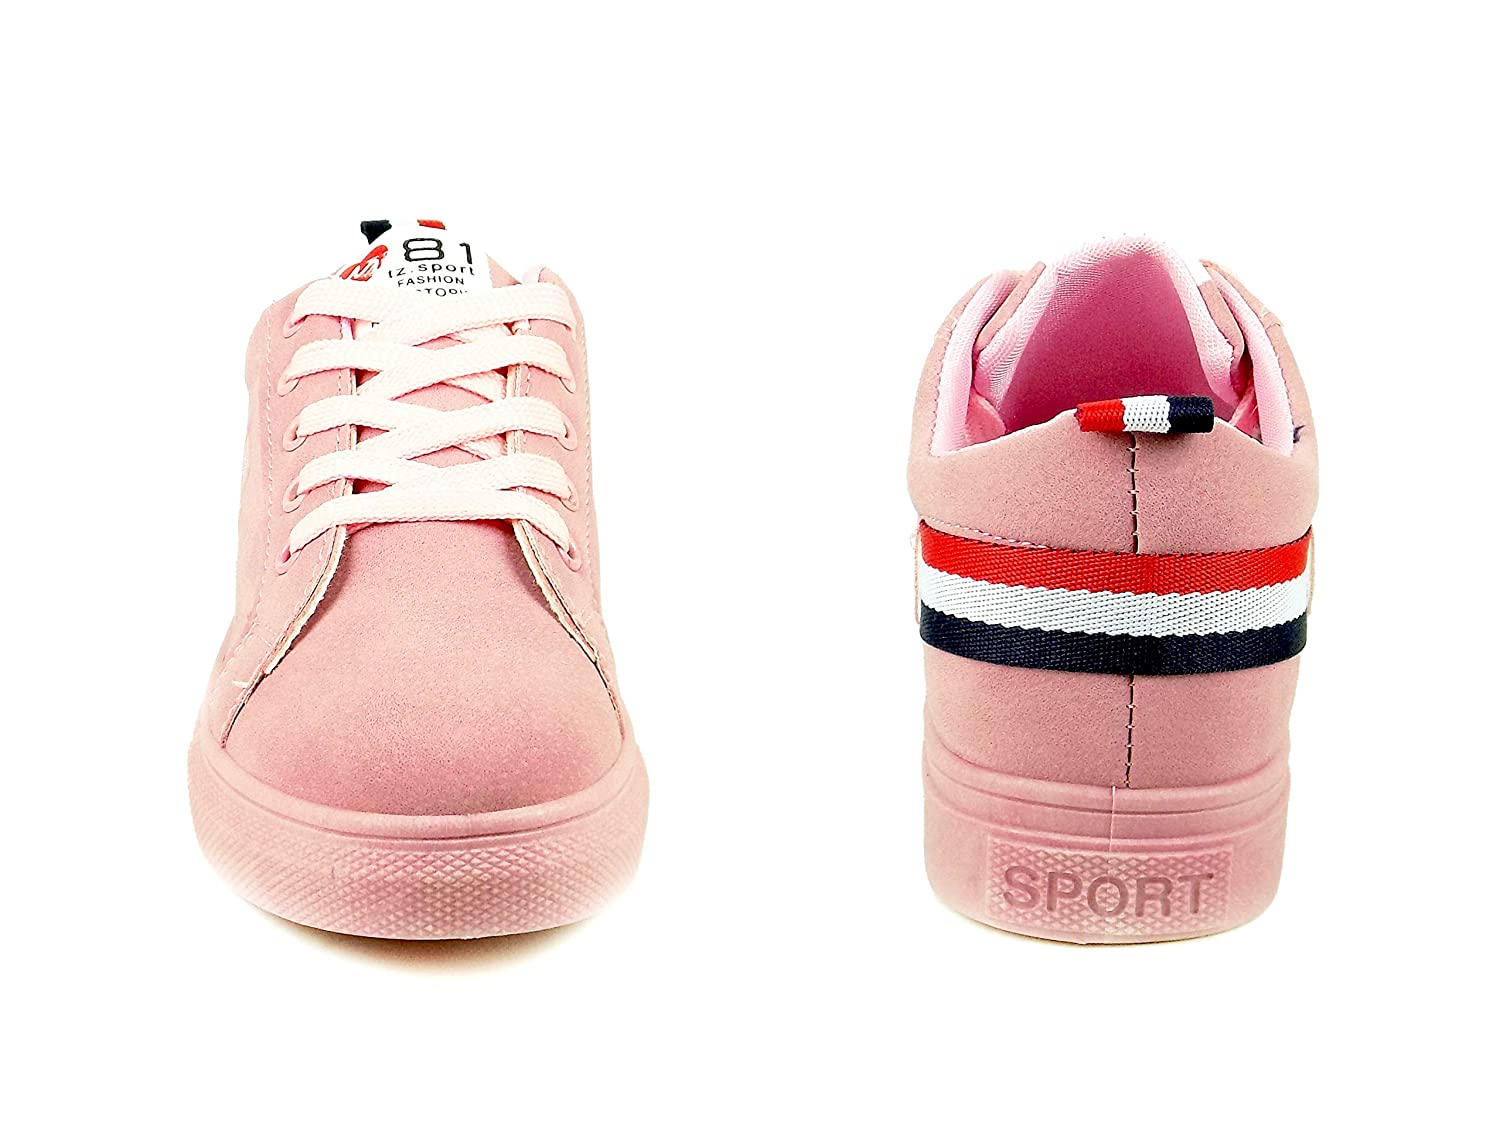 842cc7850d61 Ripley Dockstreet F Series Pink Casual Shoes  Buy Online at Low Prices in  India - Amazon.in